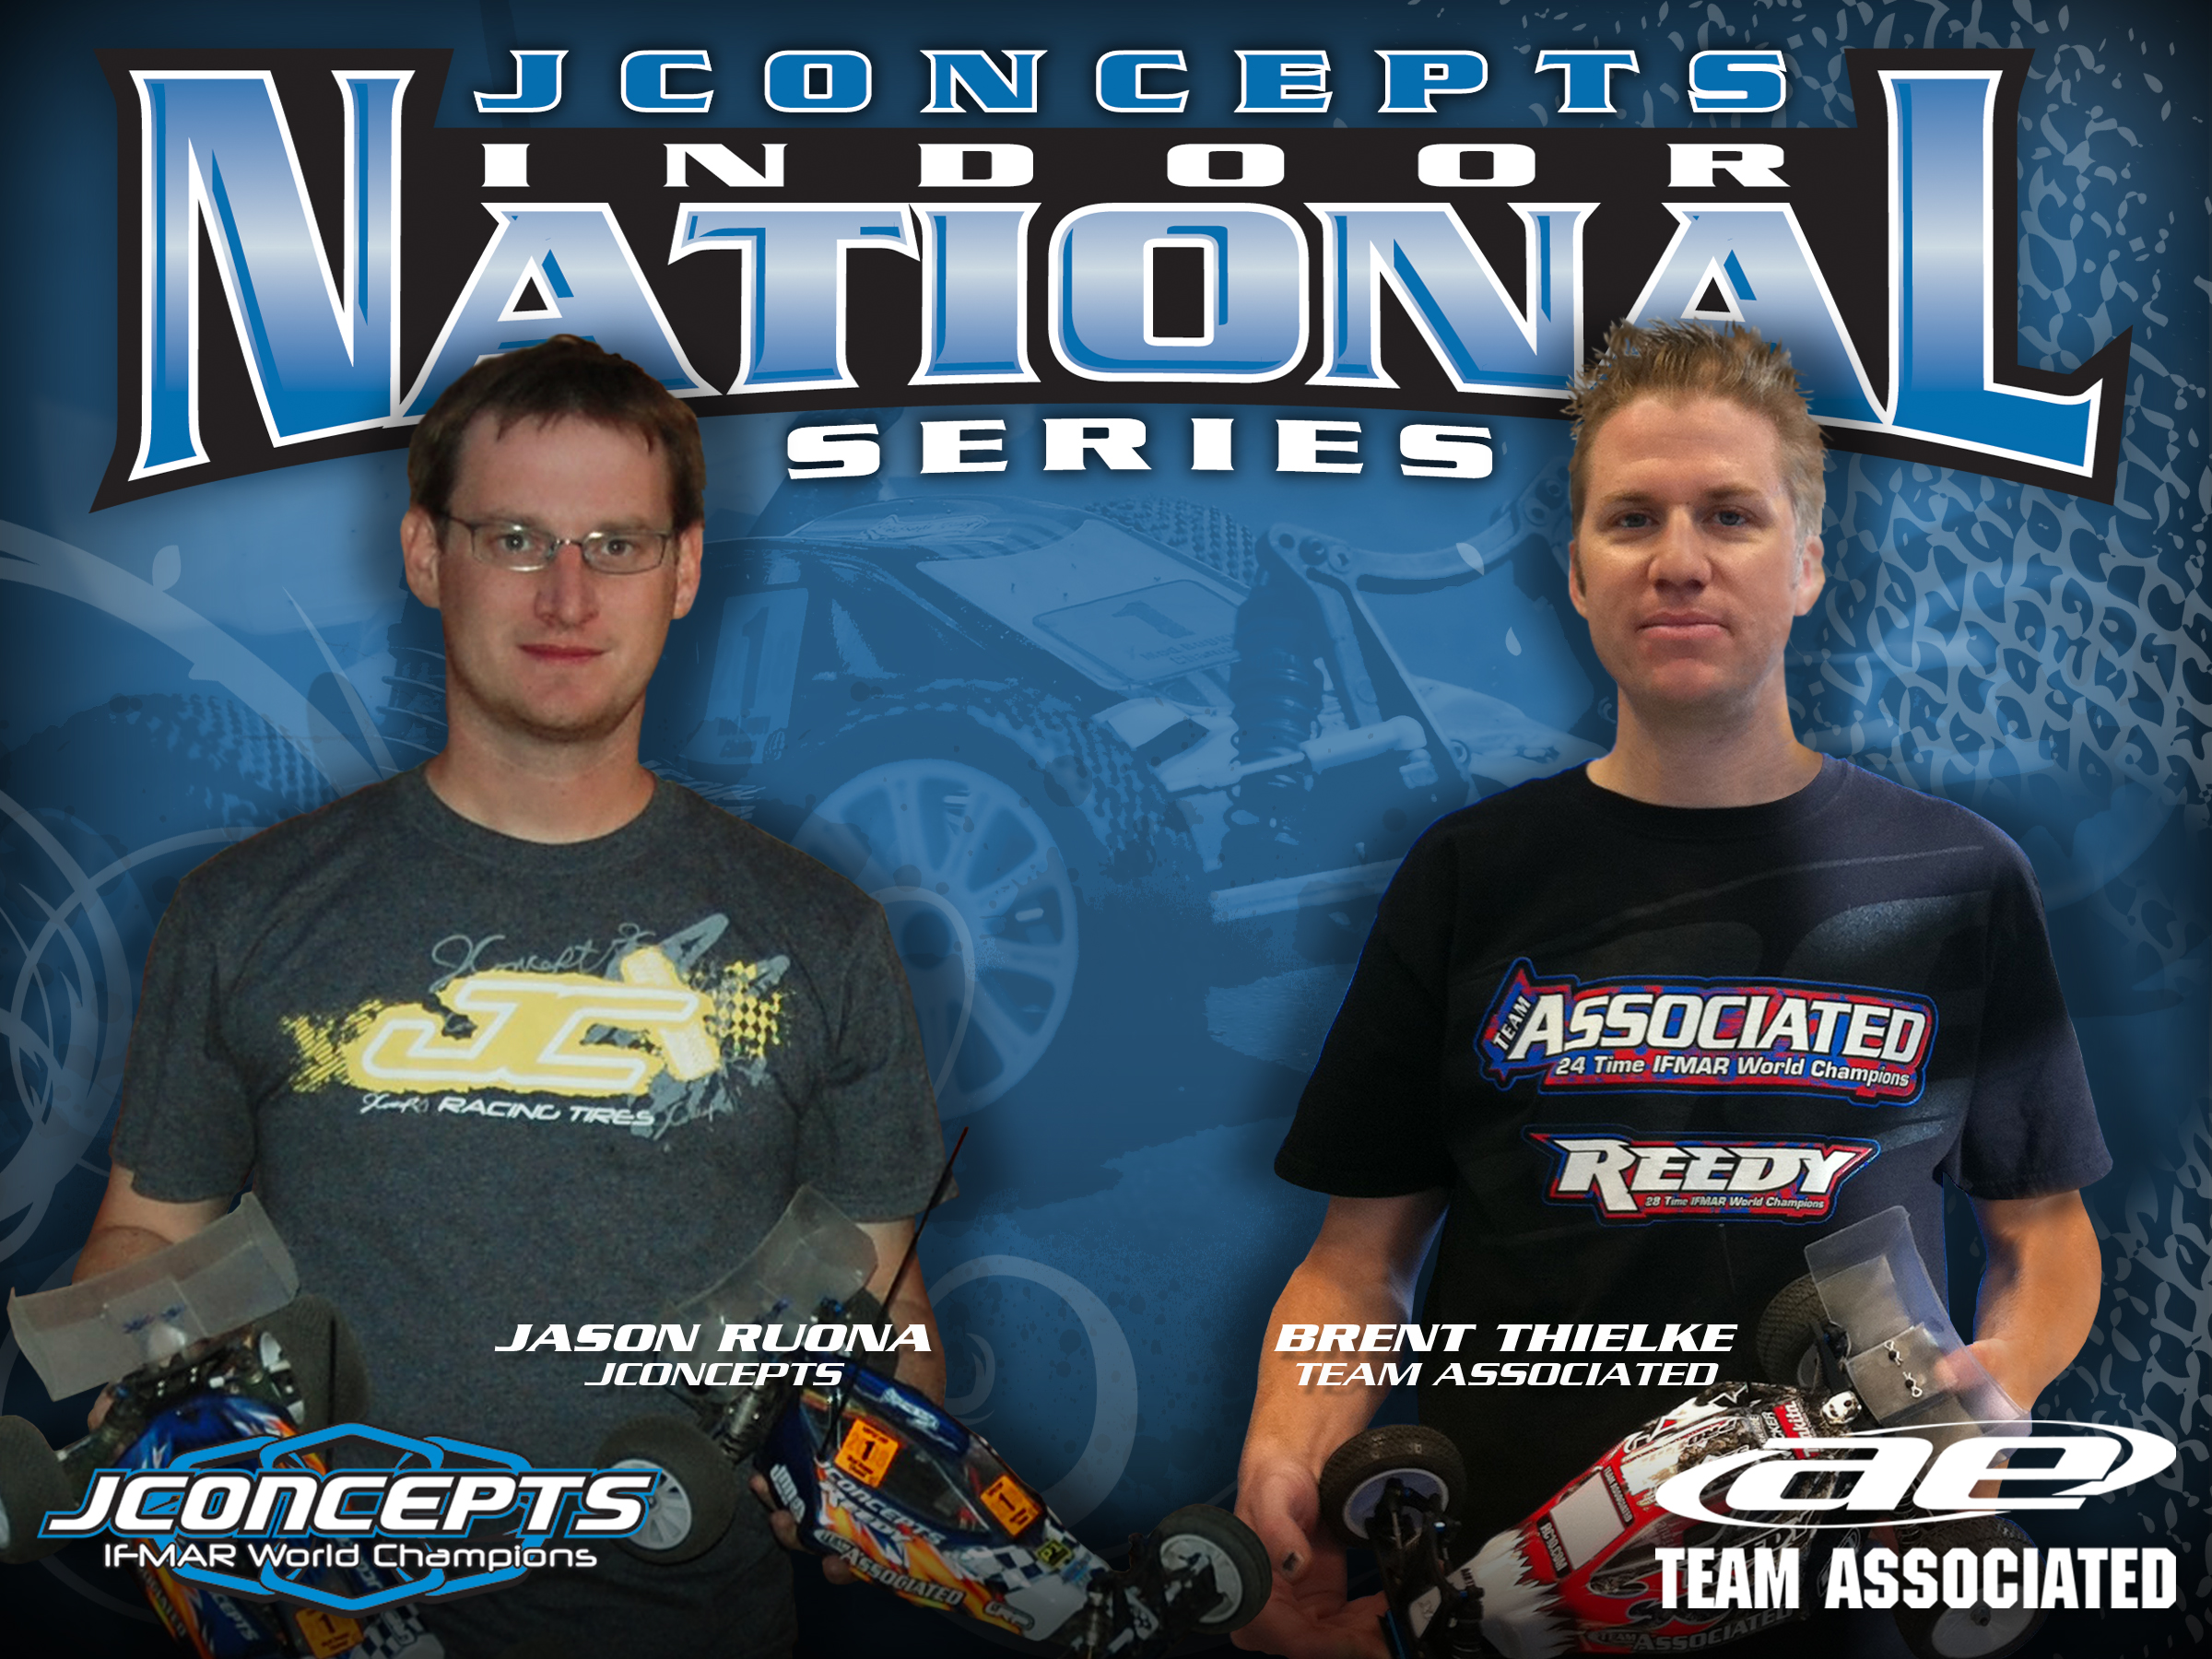 JC-and-AE-Indoor-National-Series-promo